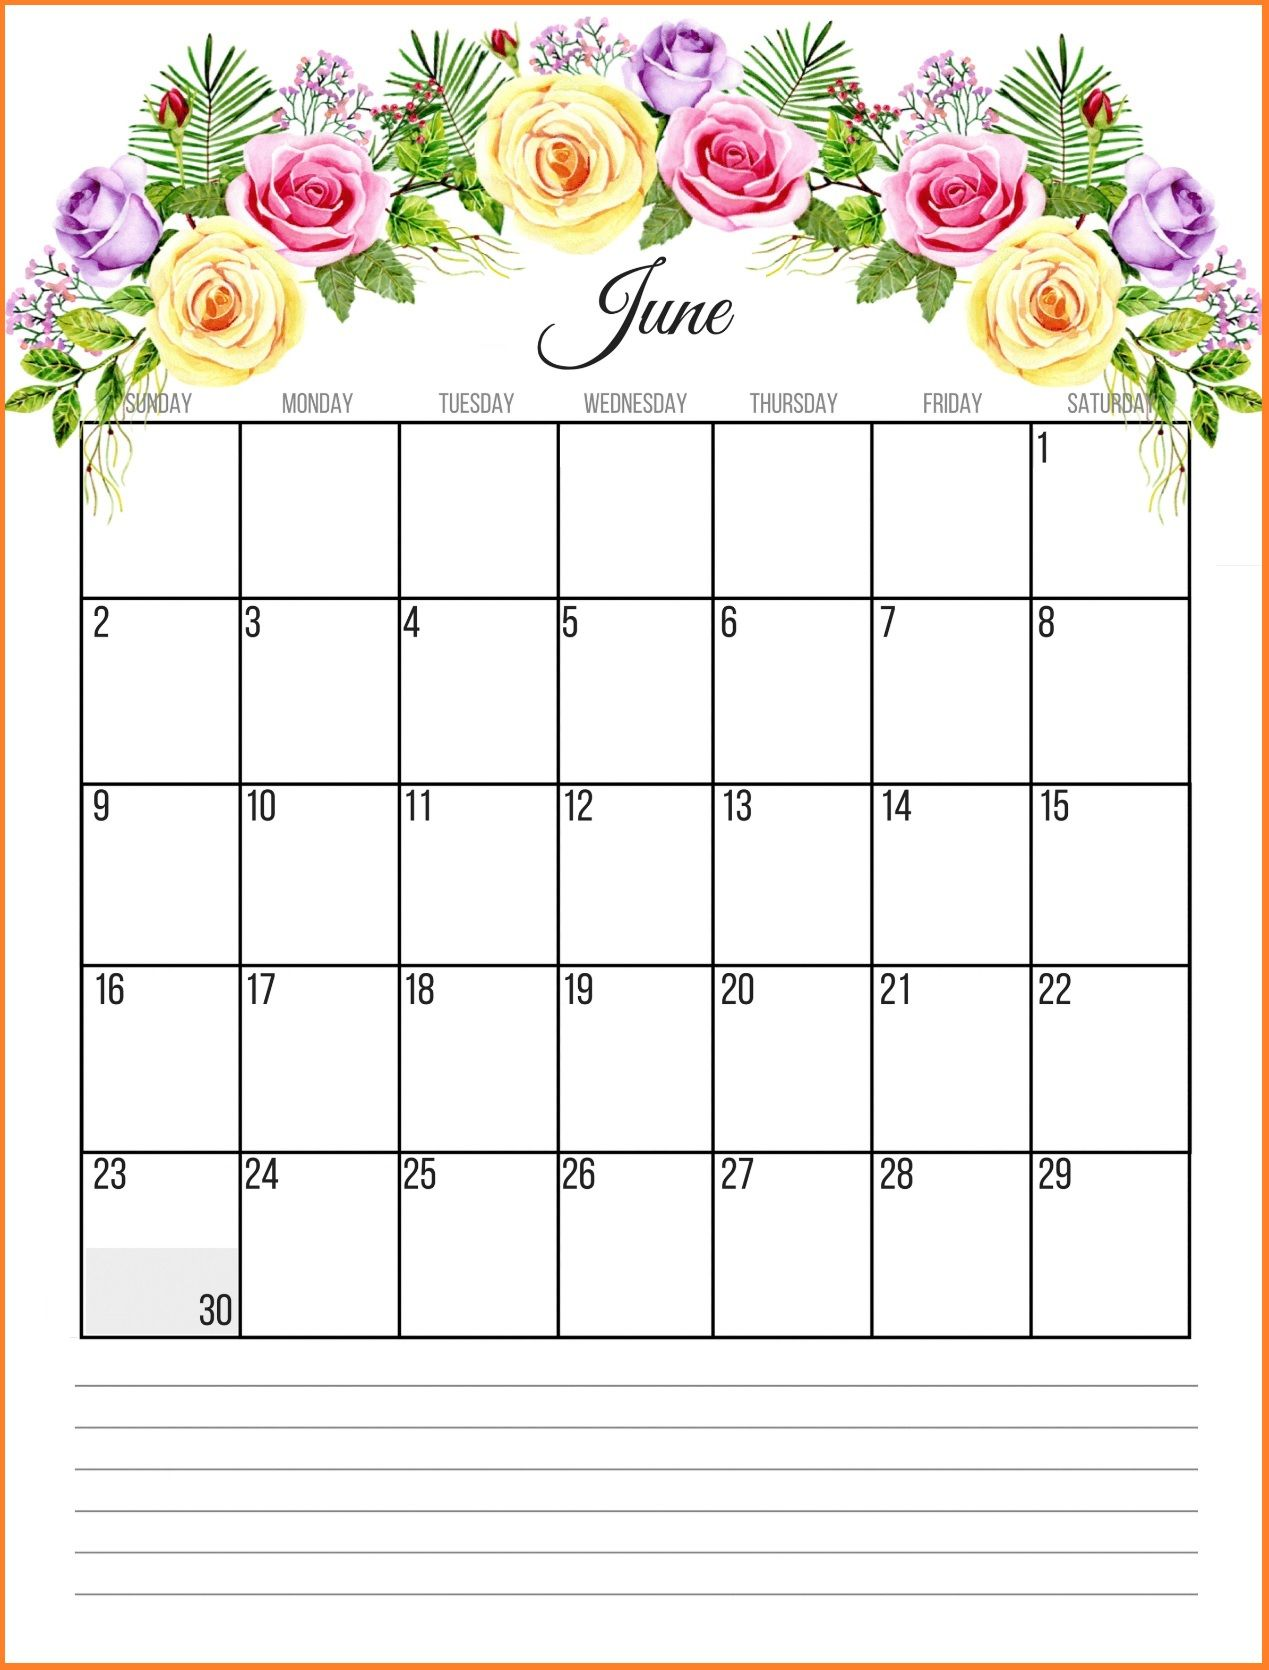 Wall Calendar for June 2019